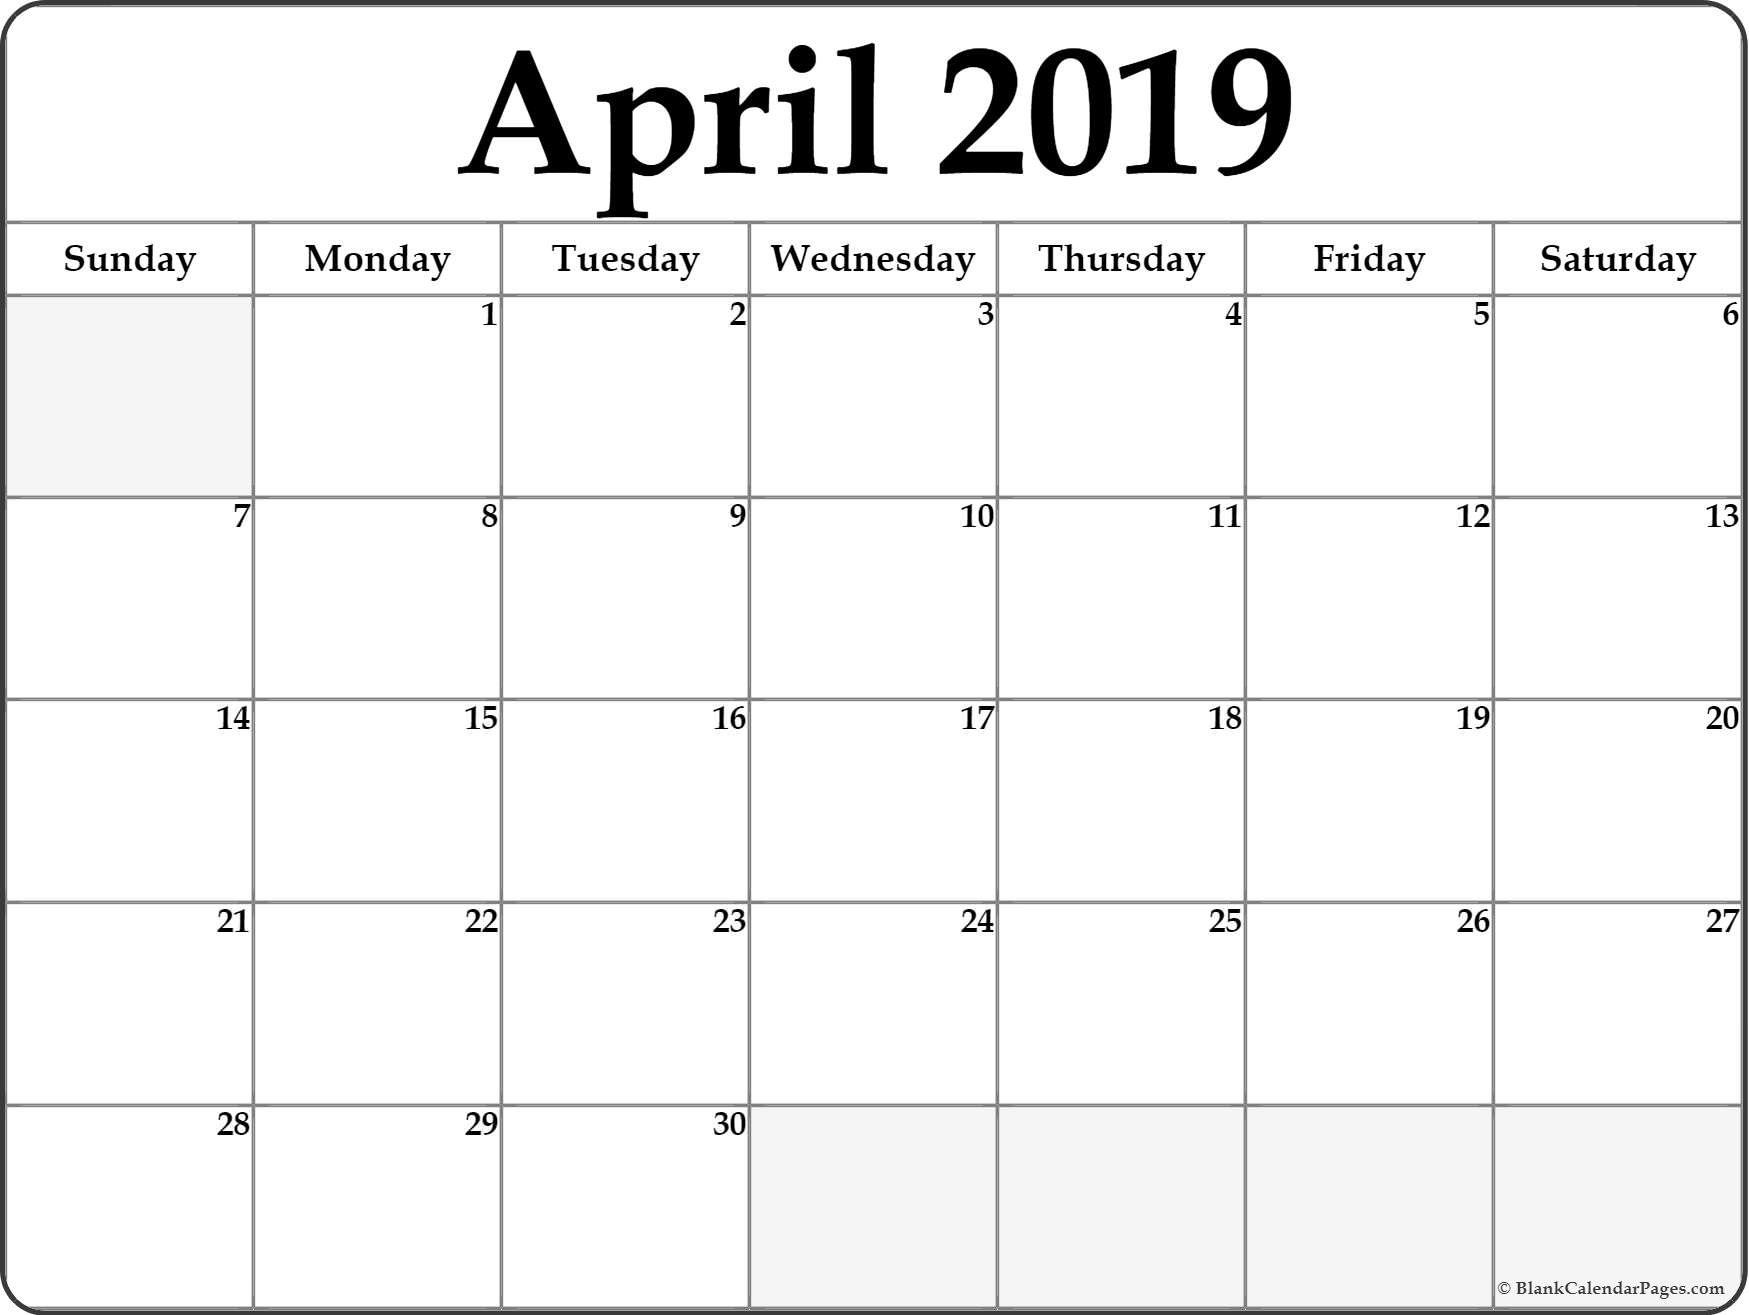 April 2019 Calendar Template Word